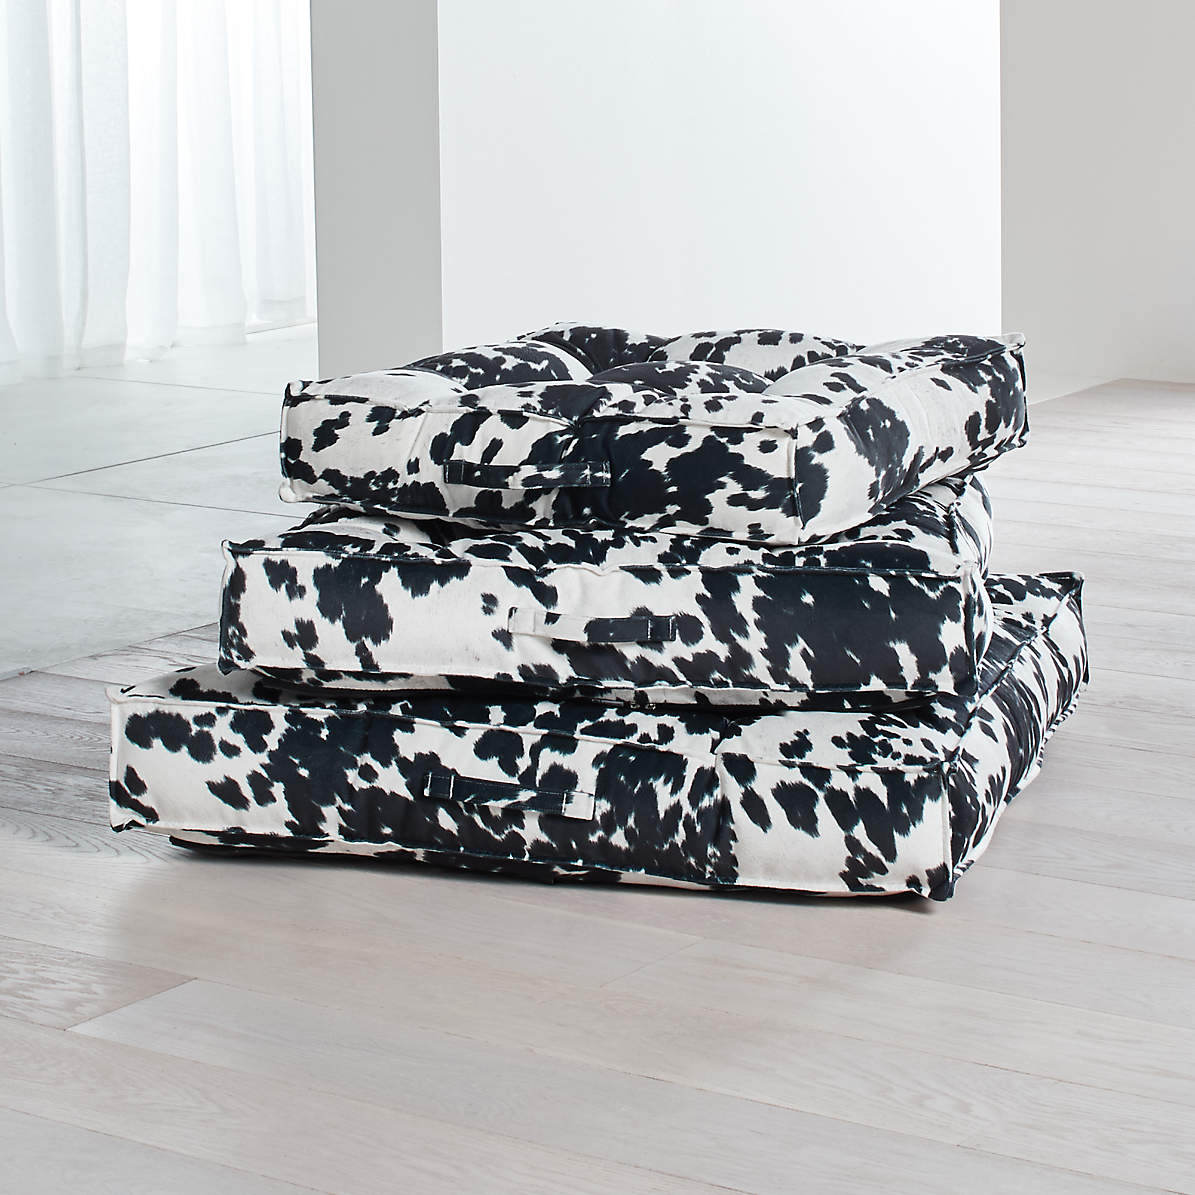 Piazza Tufted Dog Beds Crate And Barrel